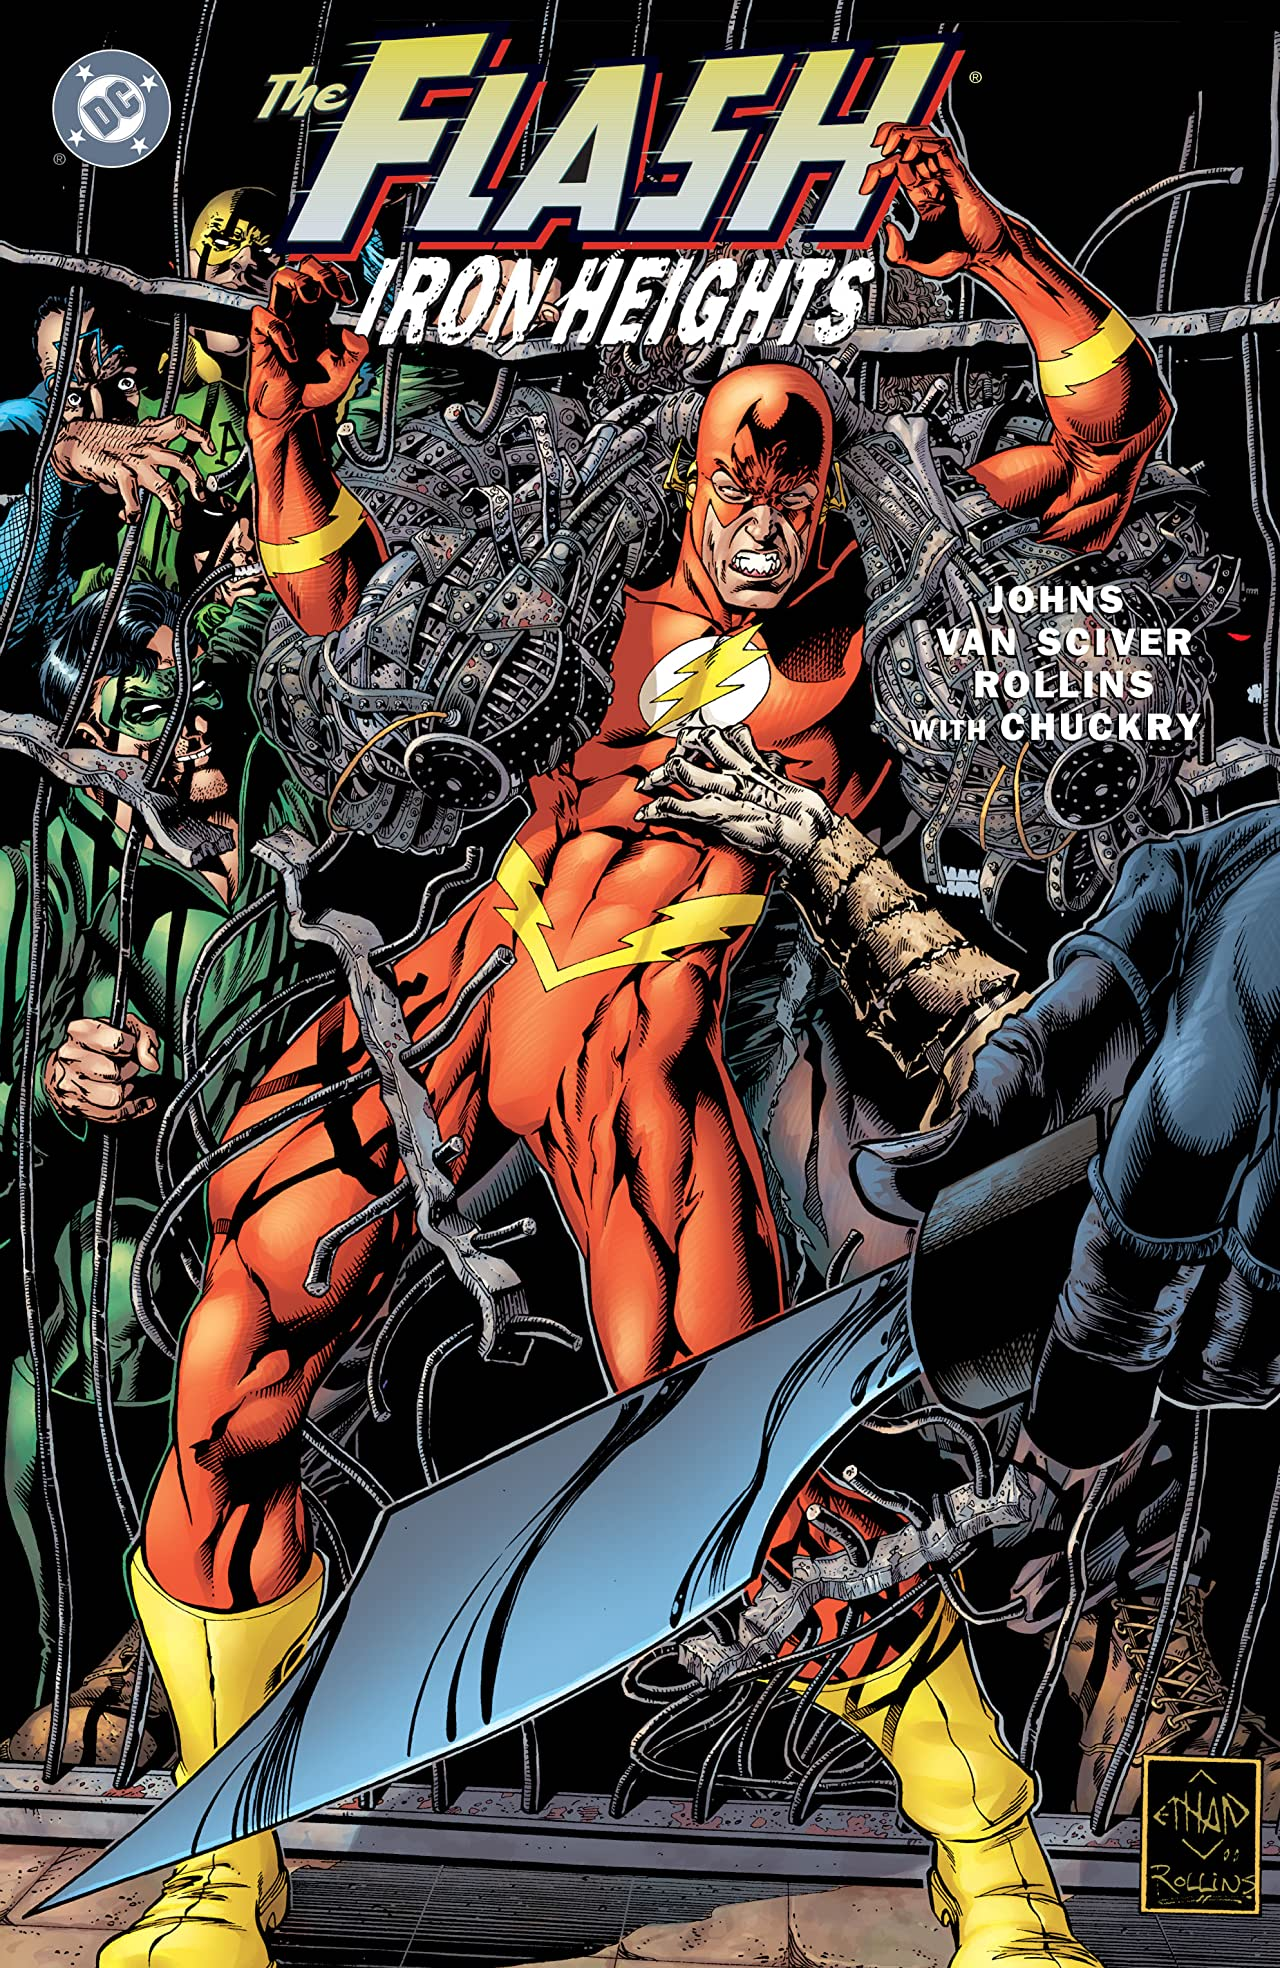 The Flash: Iron Heights (2001) #1